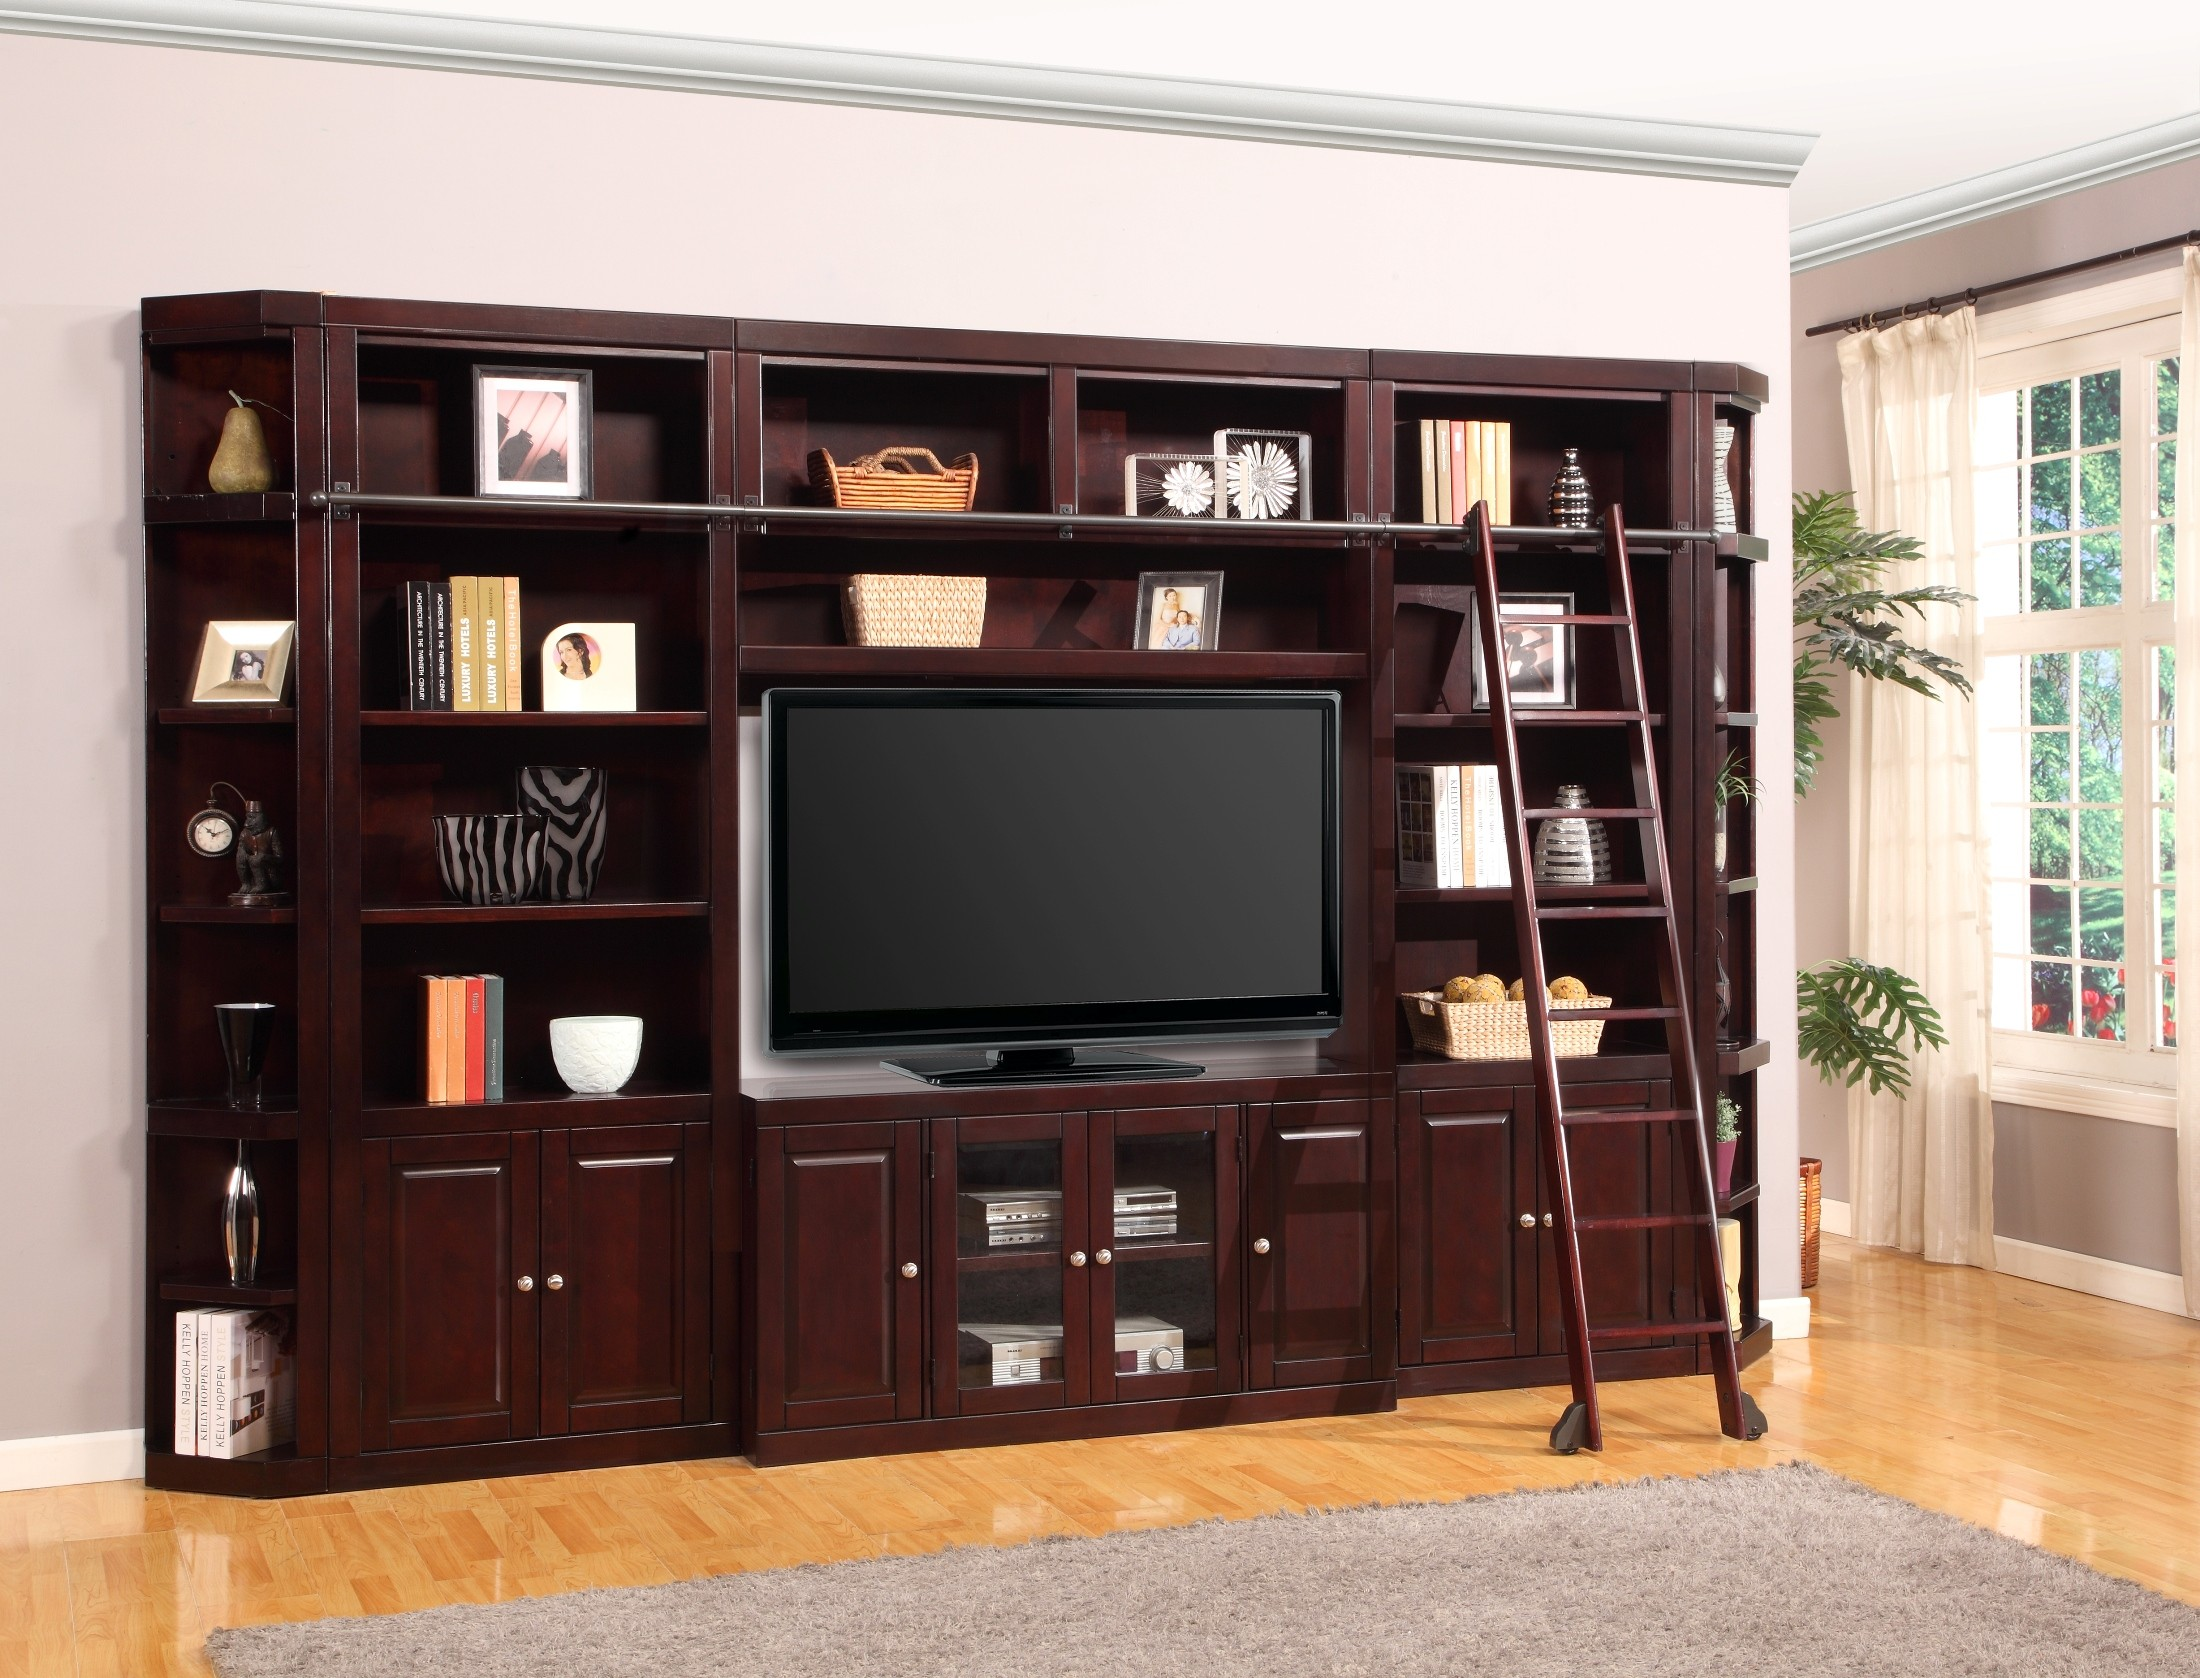 cabinet center in tv room for cabinets units wall furniture and builtin sofa storage living stand custom bookshelf corner built entertainment leather bookshelves